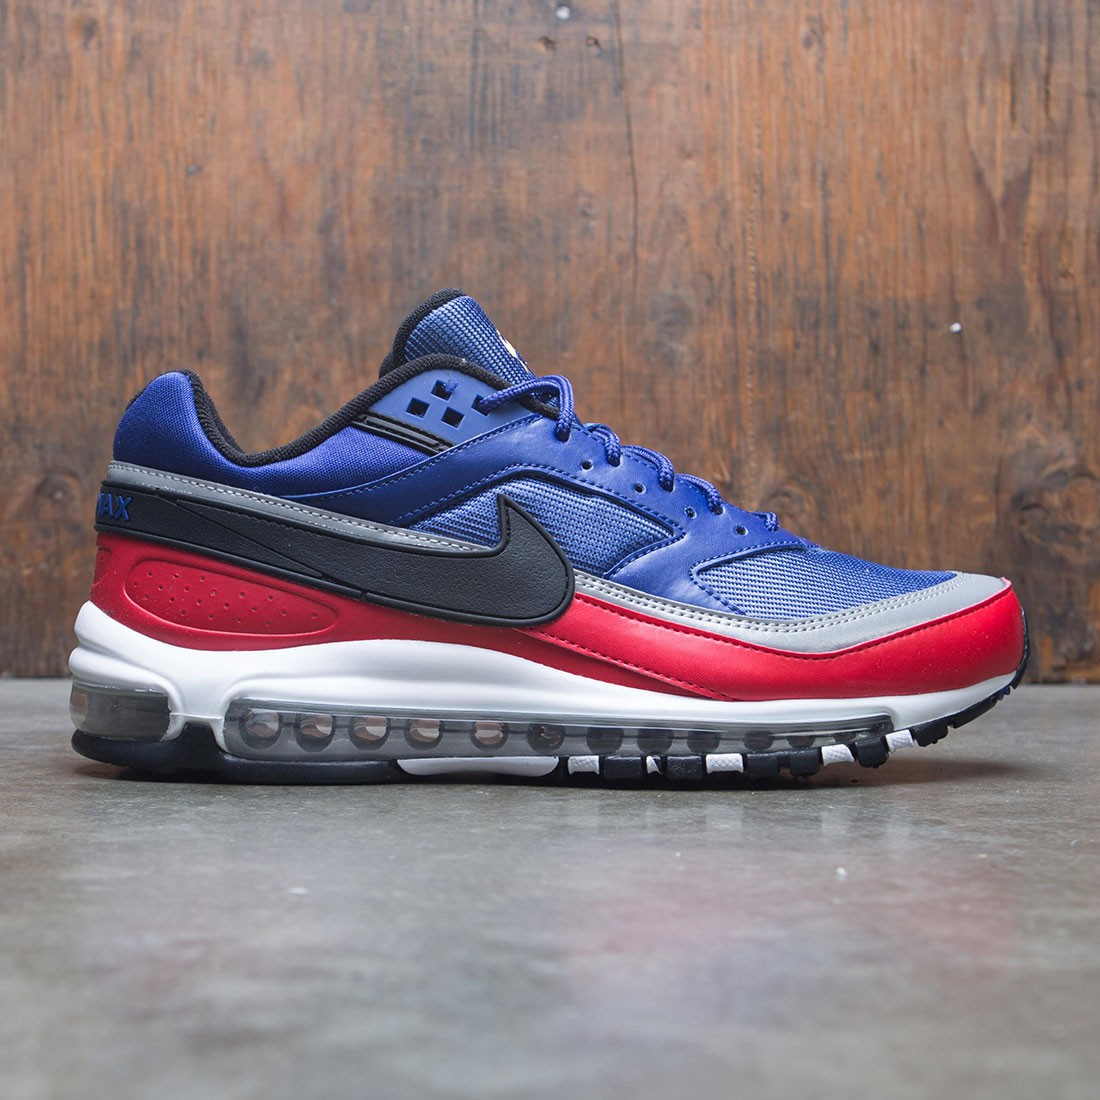 0eebbb84738ef nike men air max 97 bw deep royal blue black university red